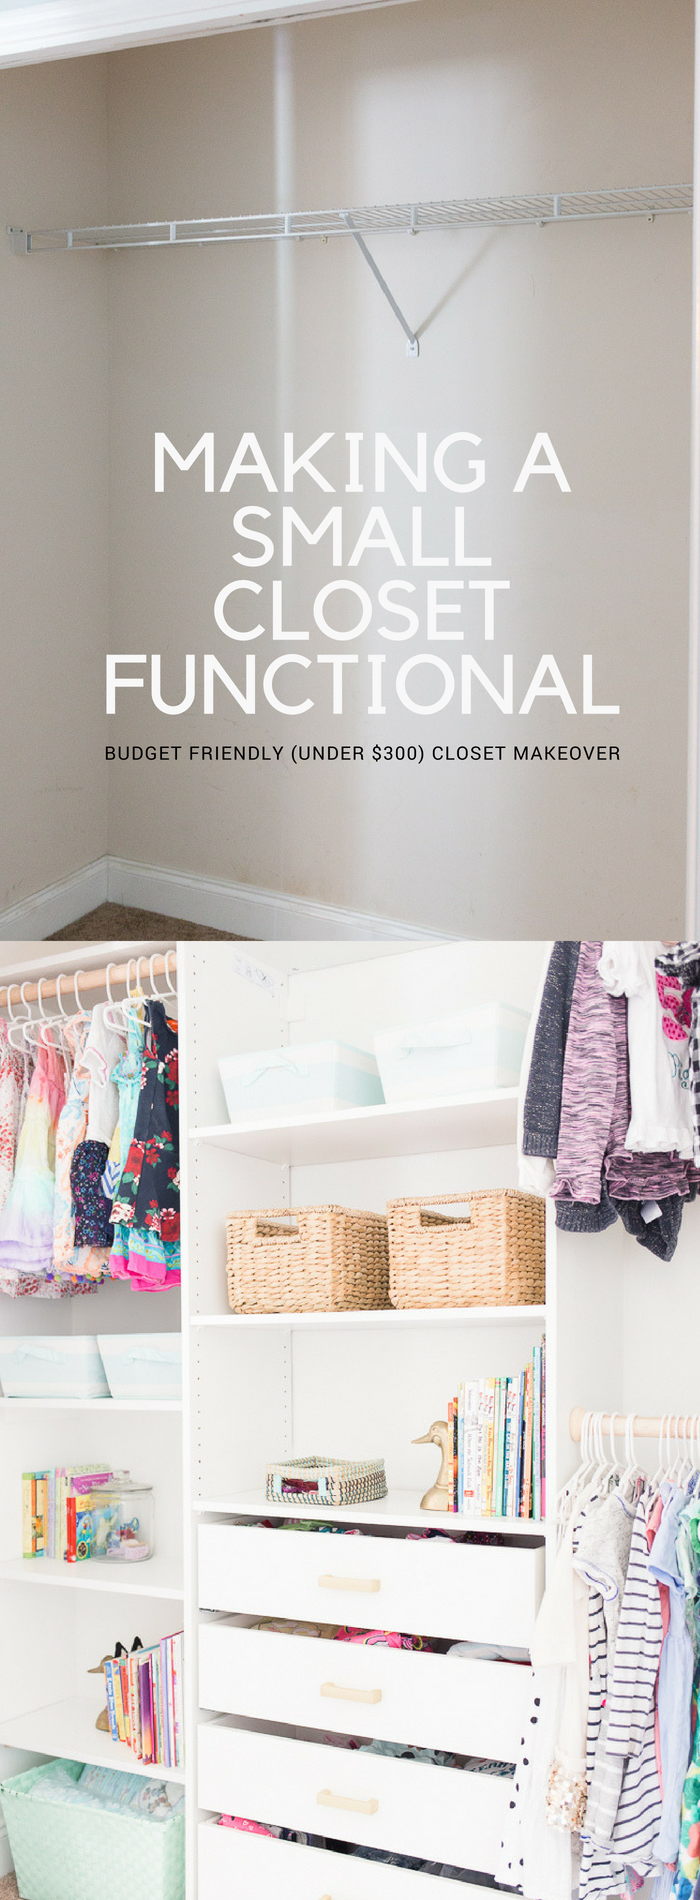 SMALL CLOSET MAKEOVER - How to create a functional and beautiful closet organizer in a small but mighty cloest space for less than $300